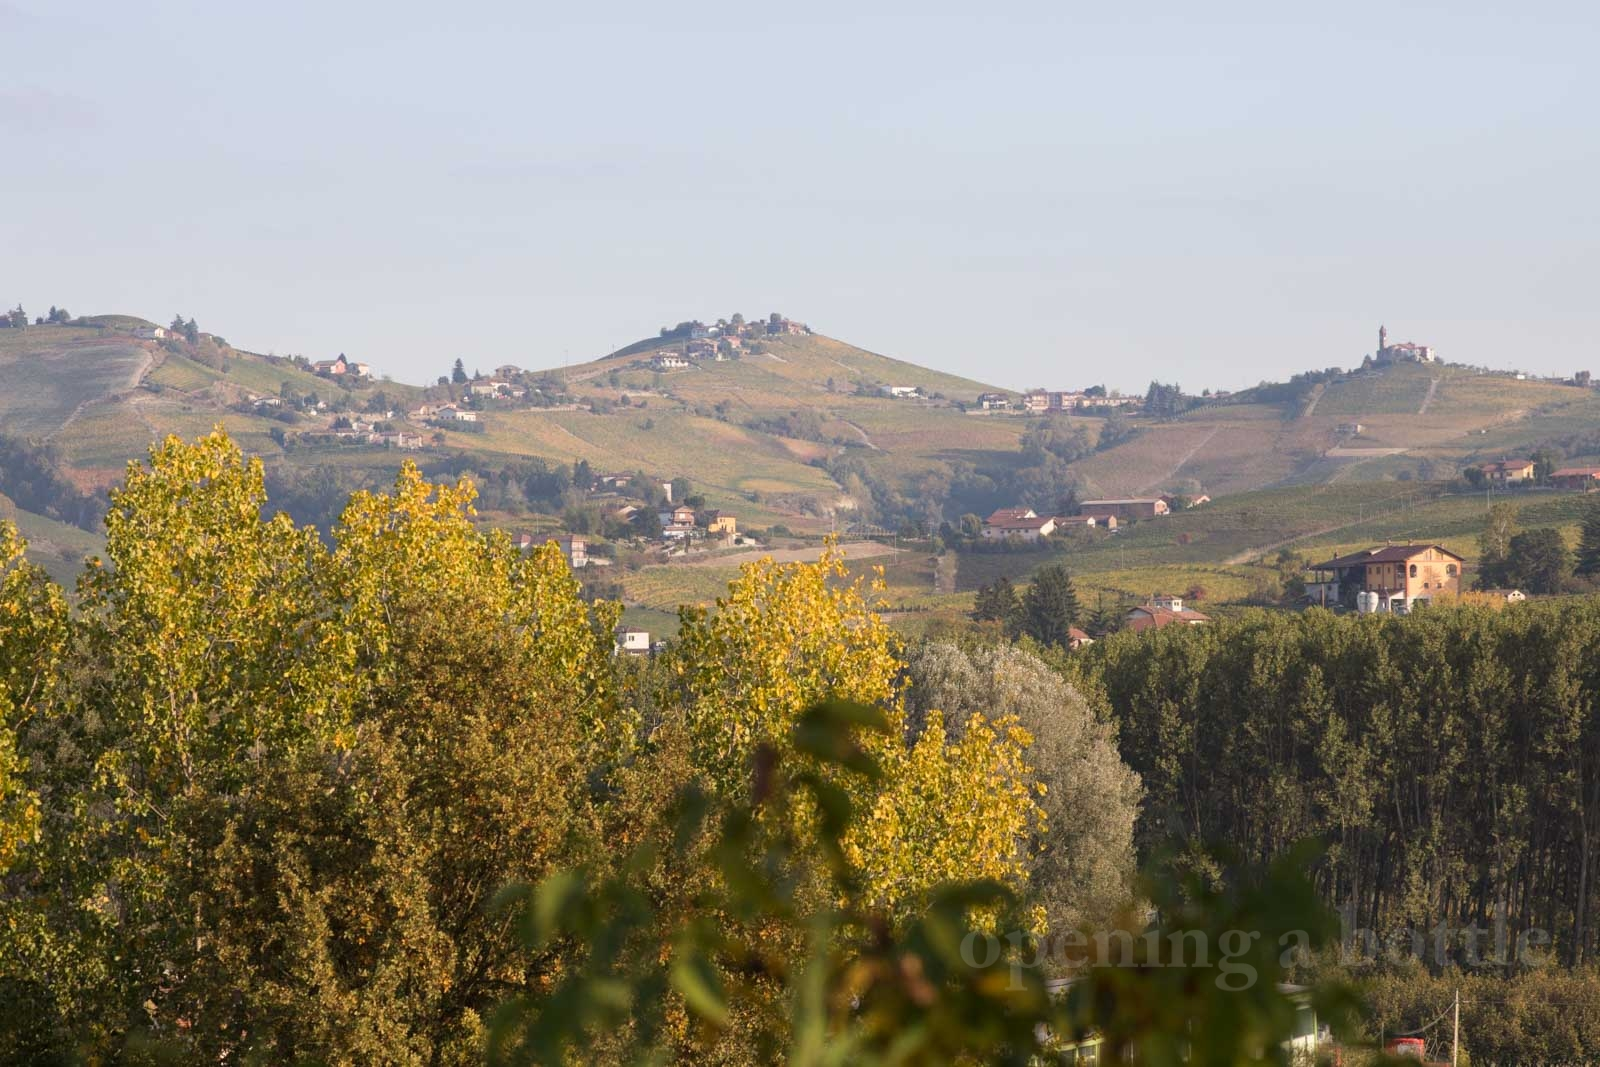 Our view of the Barbaresco hills from our little Langhe hideaway. ©Kevin Day/Opening a Bottle